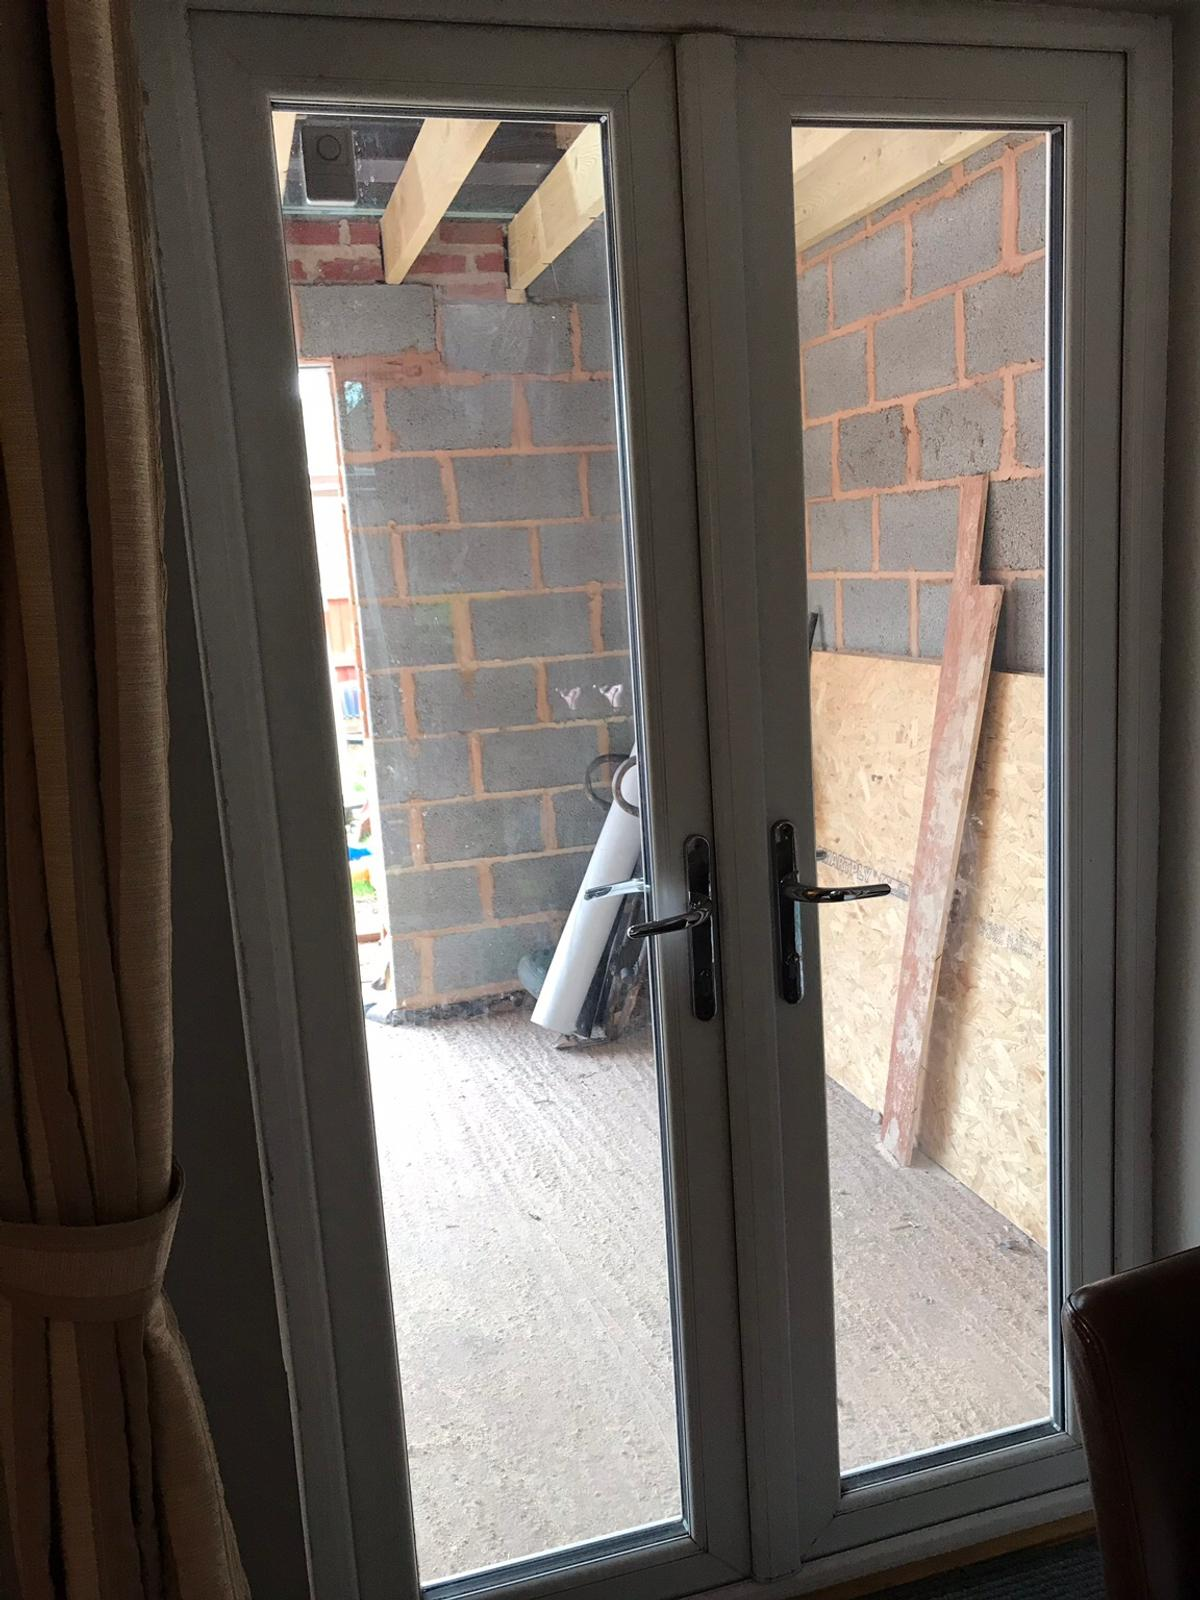 watch a6d39 a392f UPVC Patio Doors in excellent condition